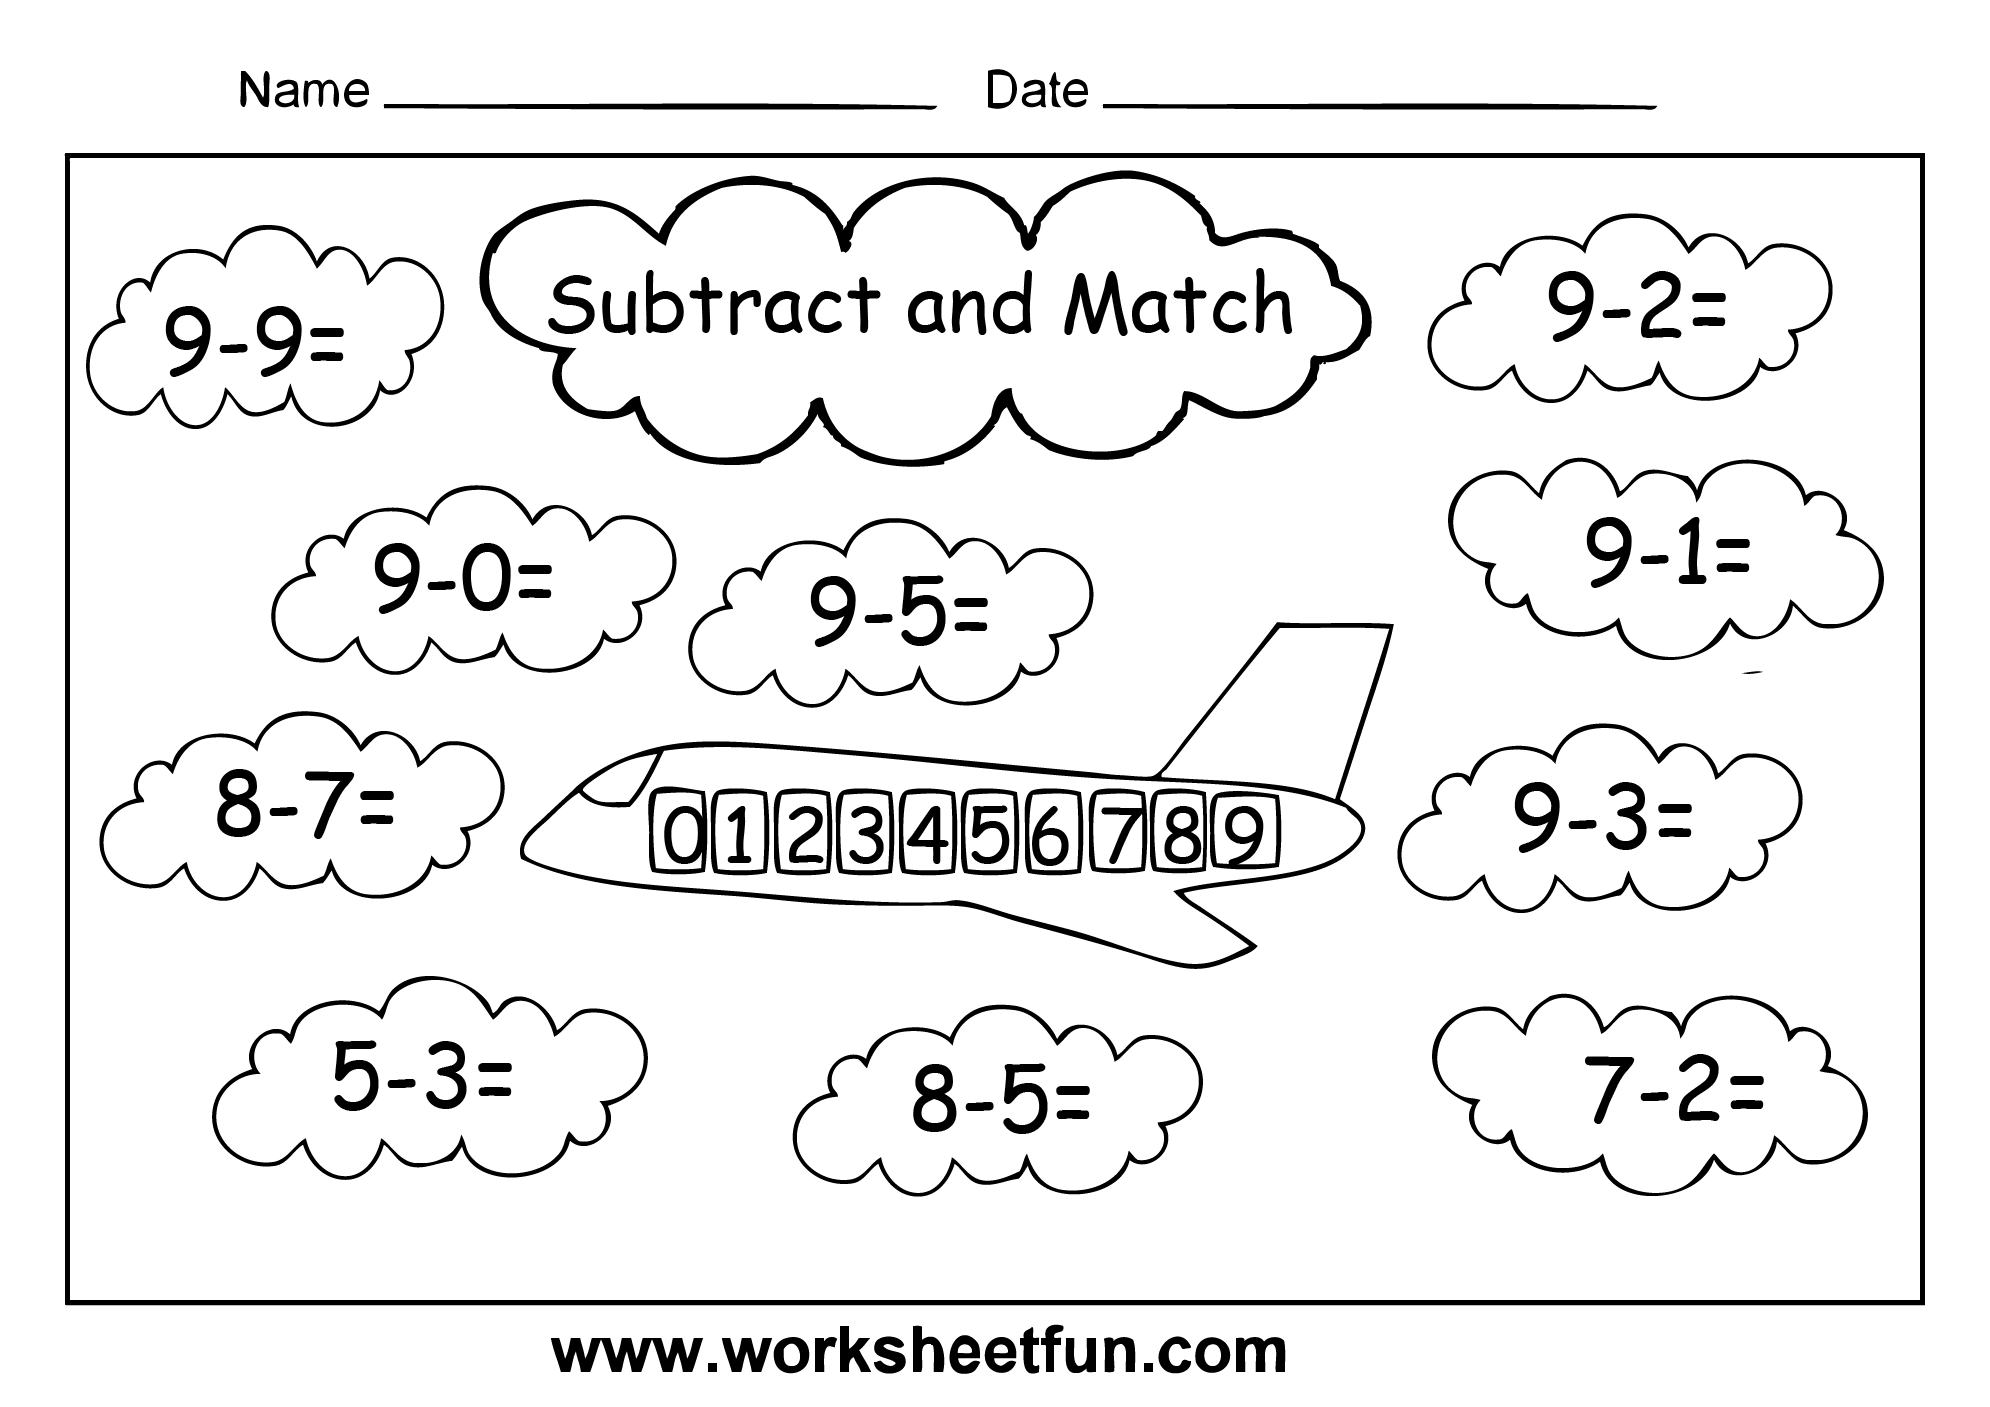 math worksheet : 1000 images about worksheets on pinterest  first grade math  : Basic Subtraction Worksheet